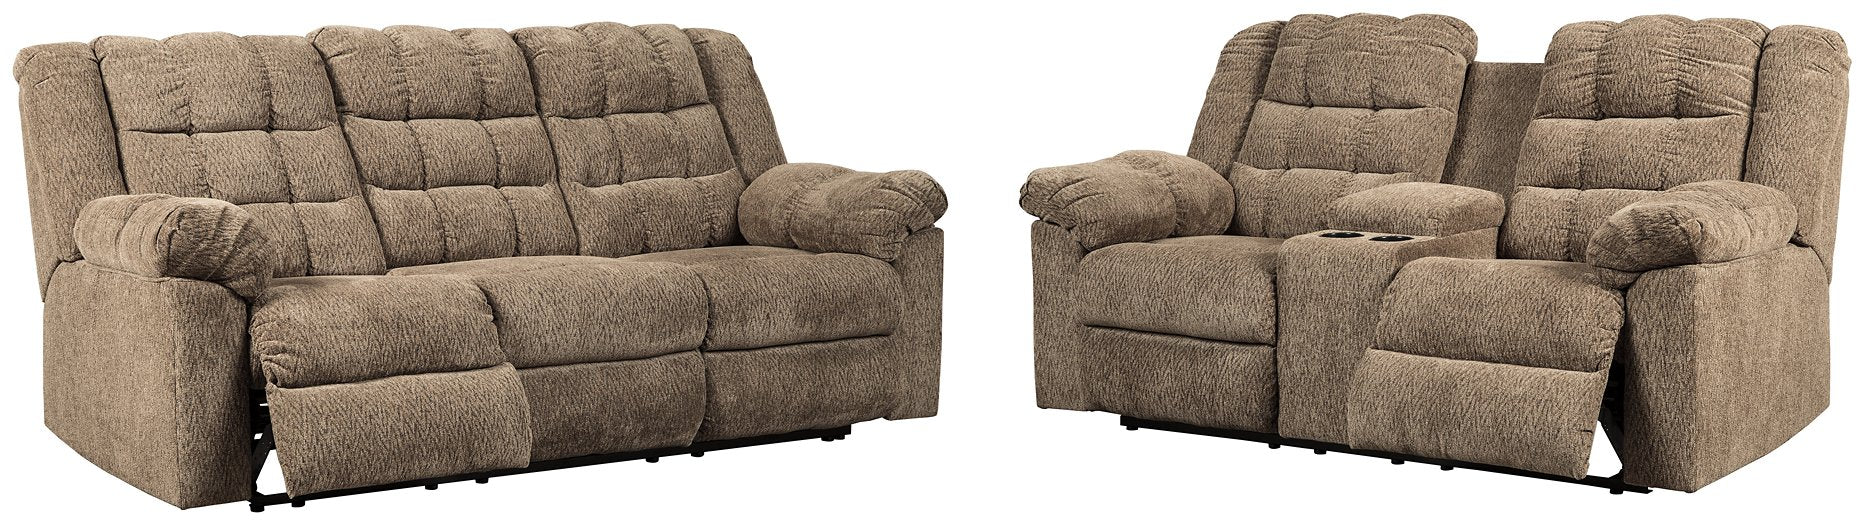 Workhorse Signature Design Contemporary 2-Piece Living Room Set image